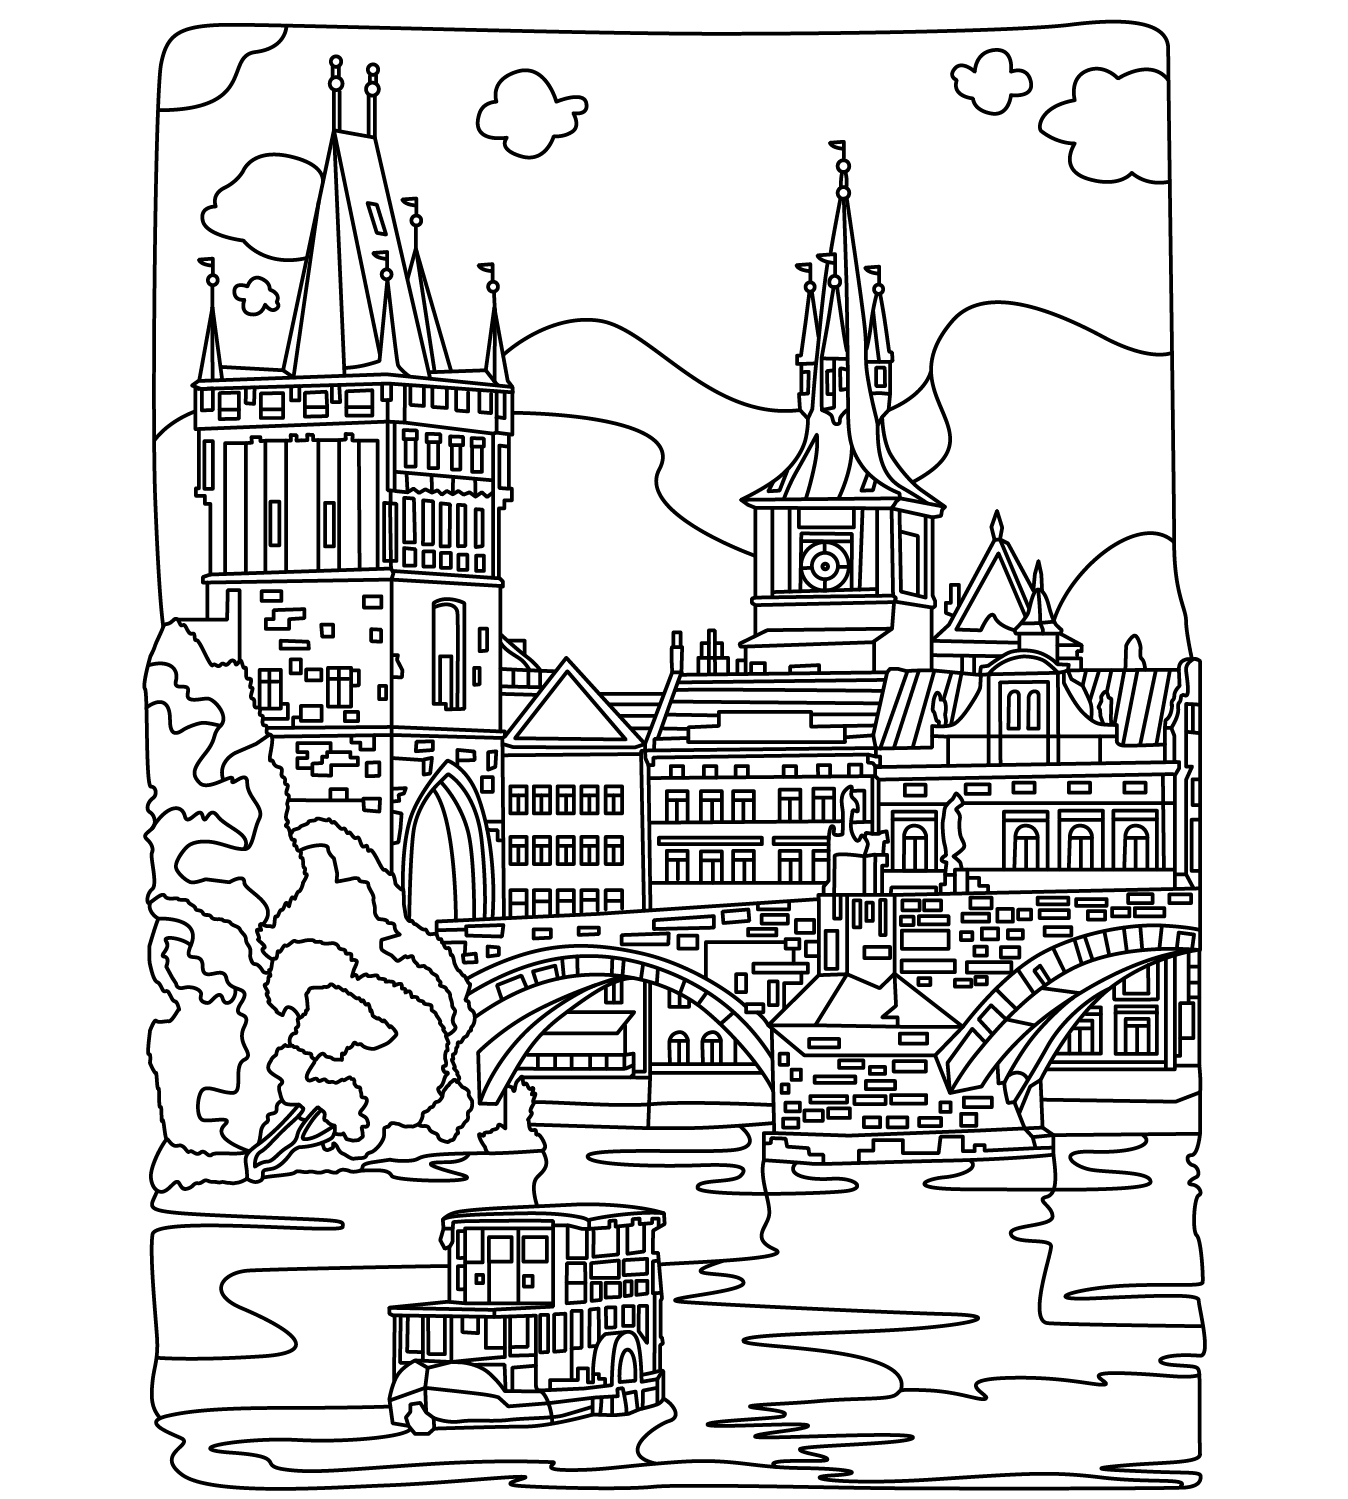 Cities Coloring Page Colorish Free Coloring App For Adults By